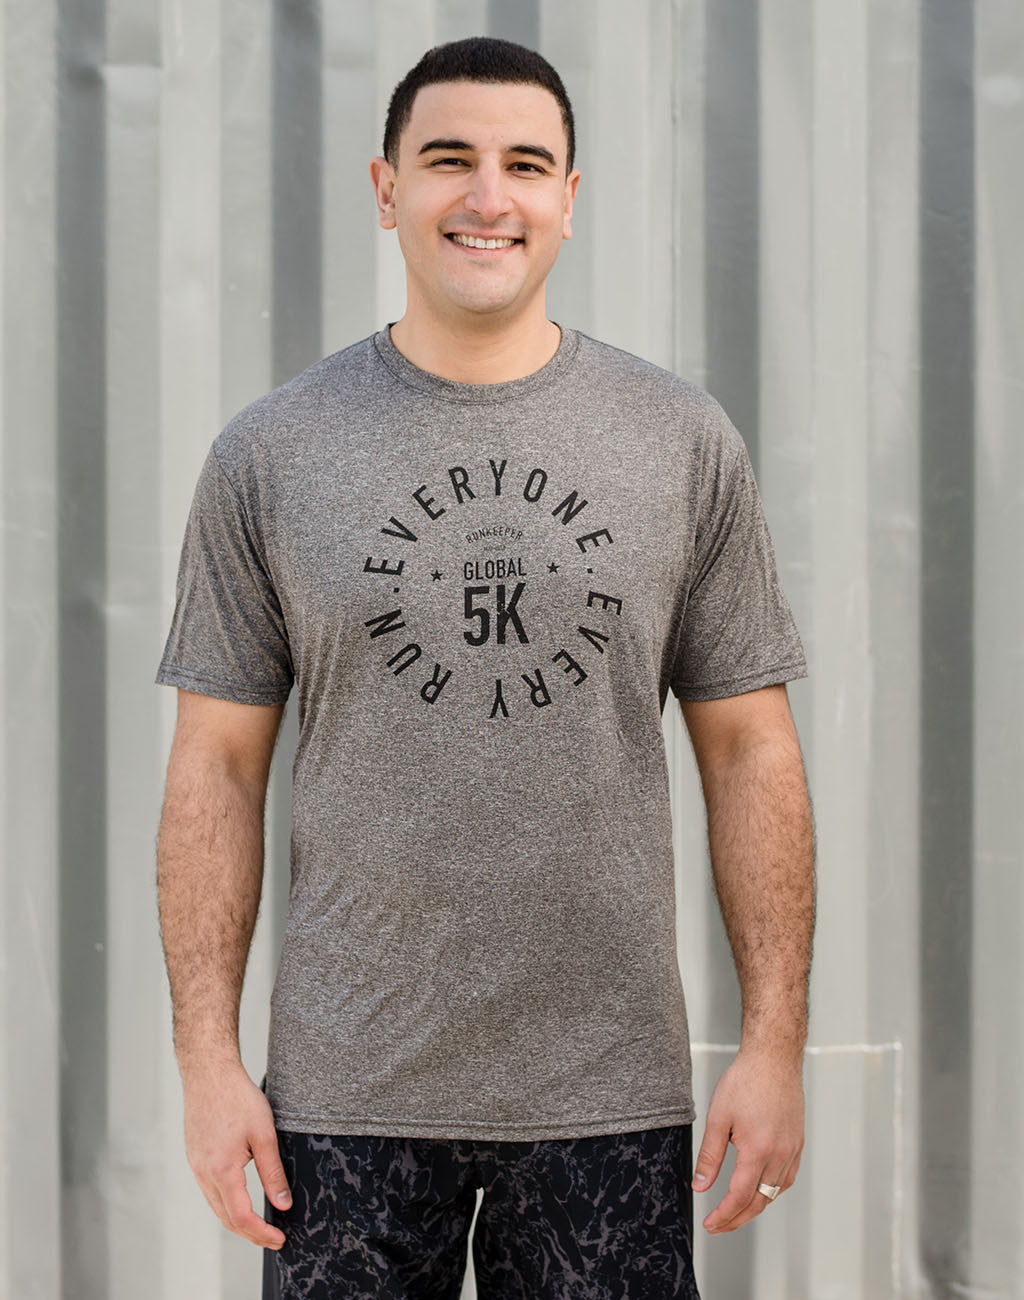 Global 5K - Men's '5K Badge' Performance Tee